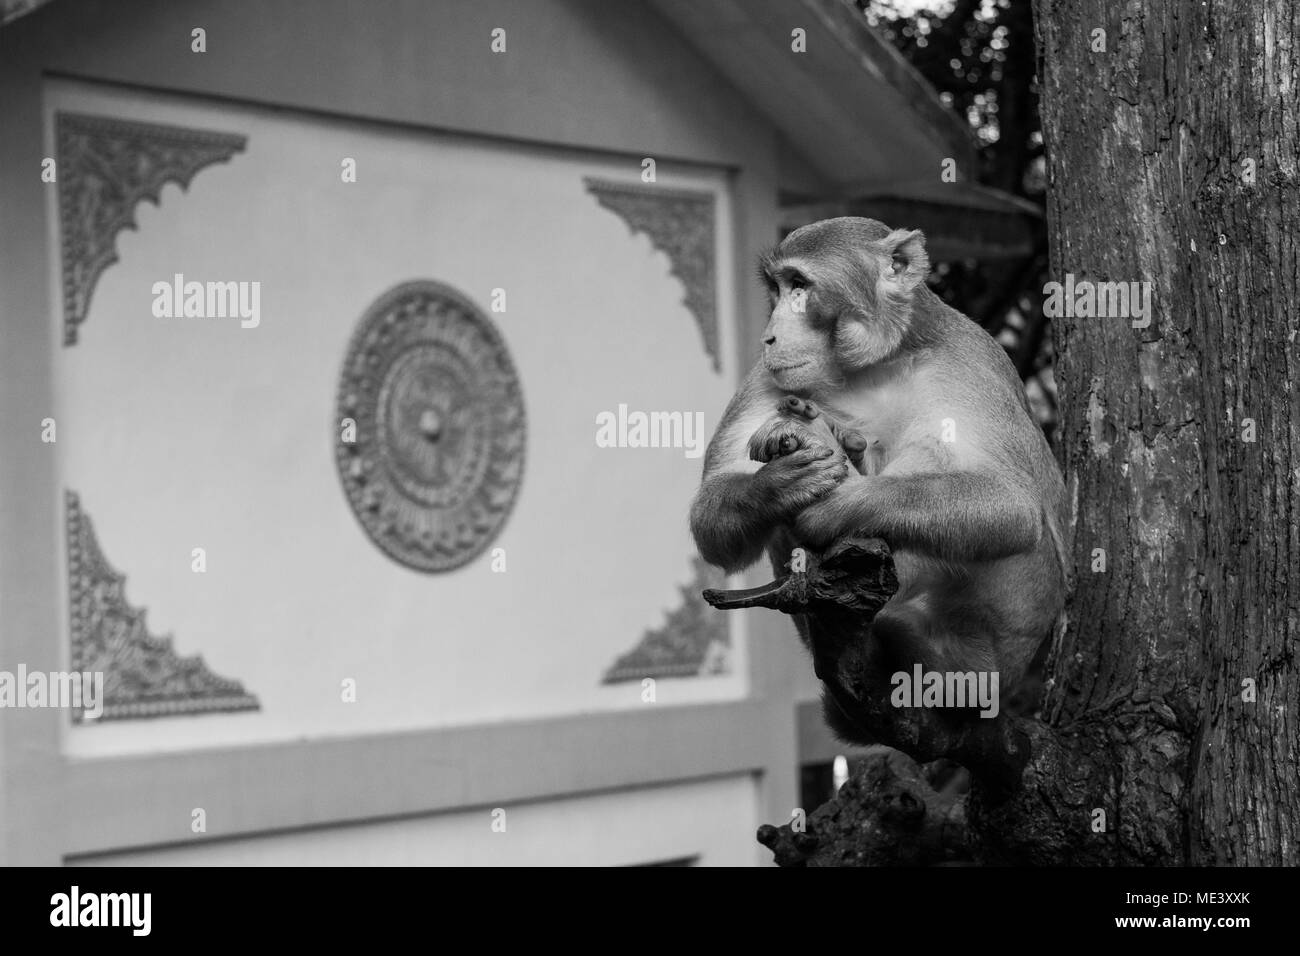 A wild adult macaque monkey, encountered at Mount Popa, sitting on a tree branch, calm as if meditating. resting, chilling on stick. Burma, Myanmar - Stock Image